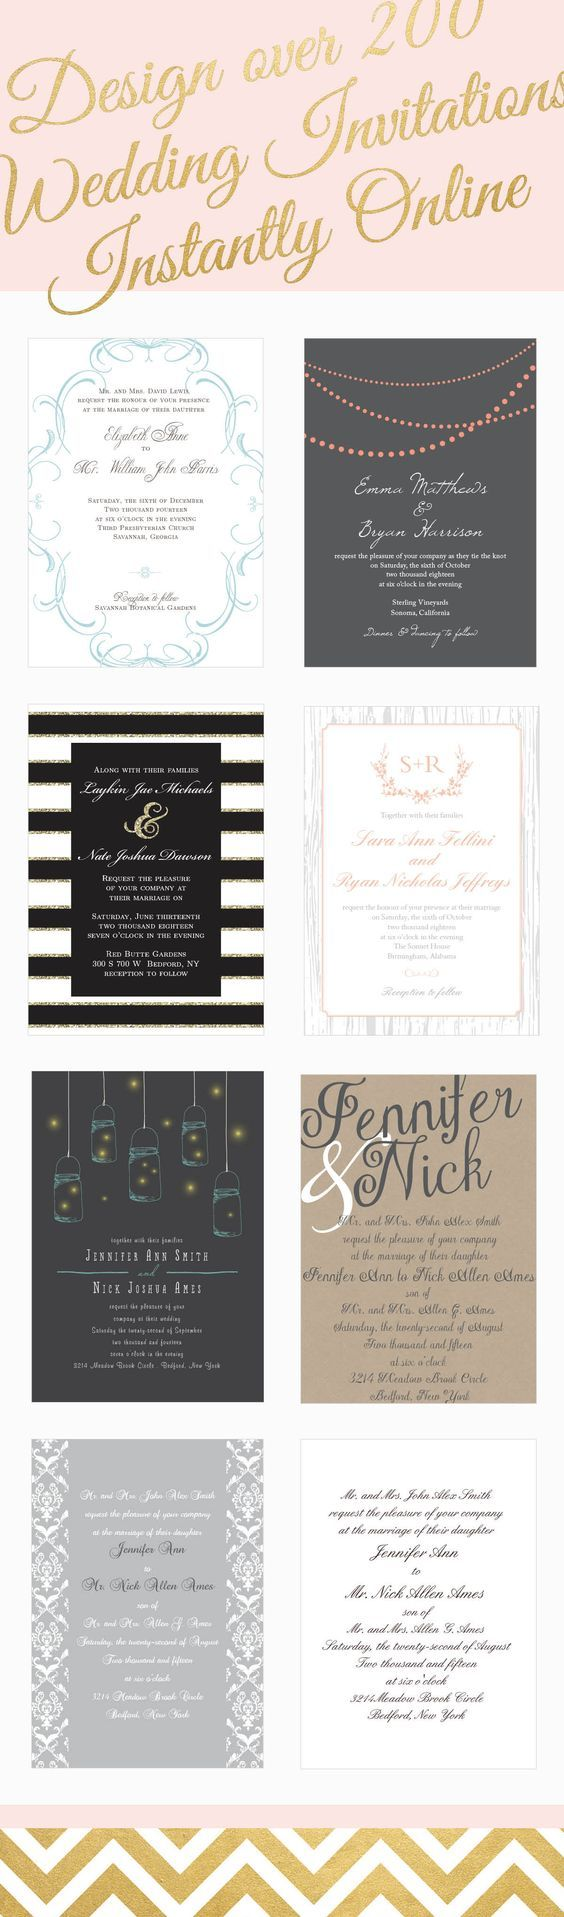 next day wedding invitations%0A Design your wedding invitations online today  Click here  http   www